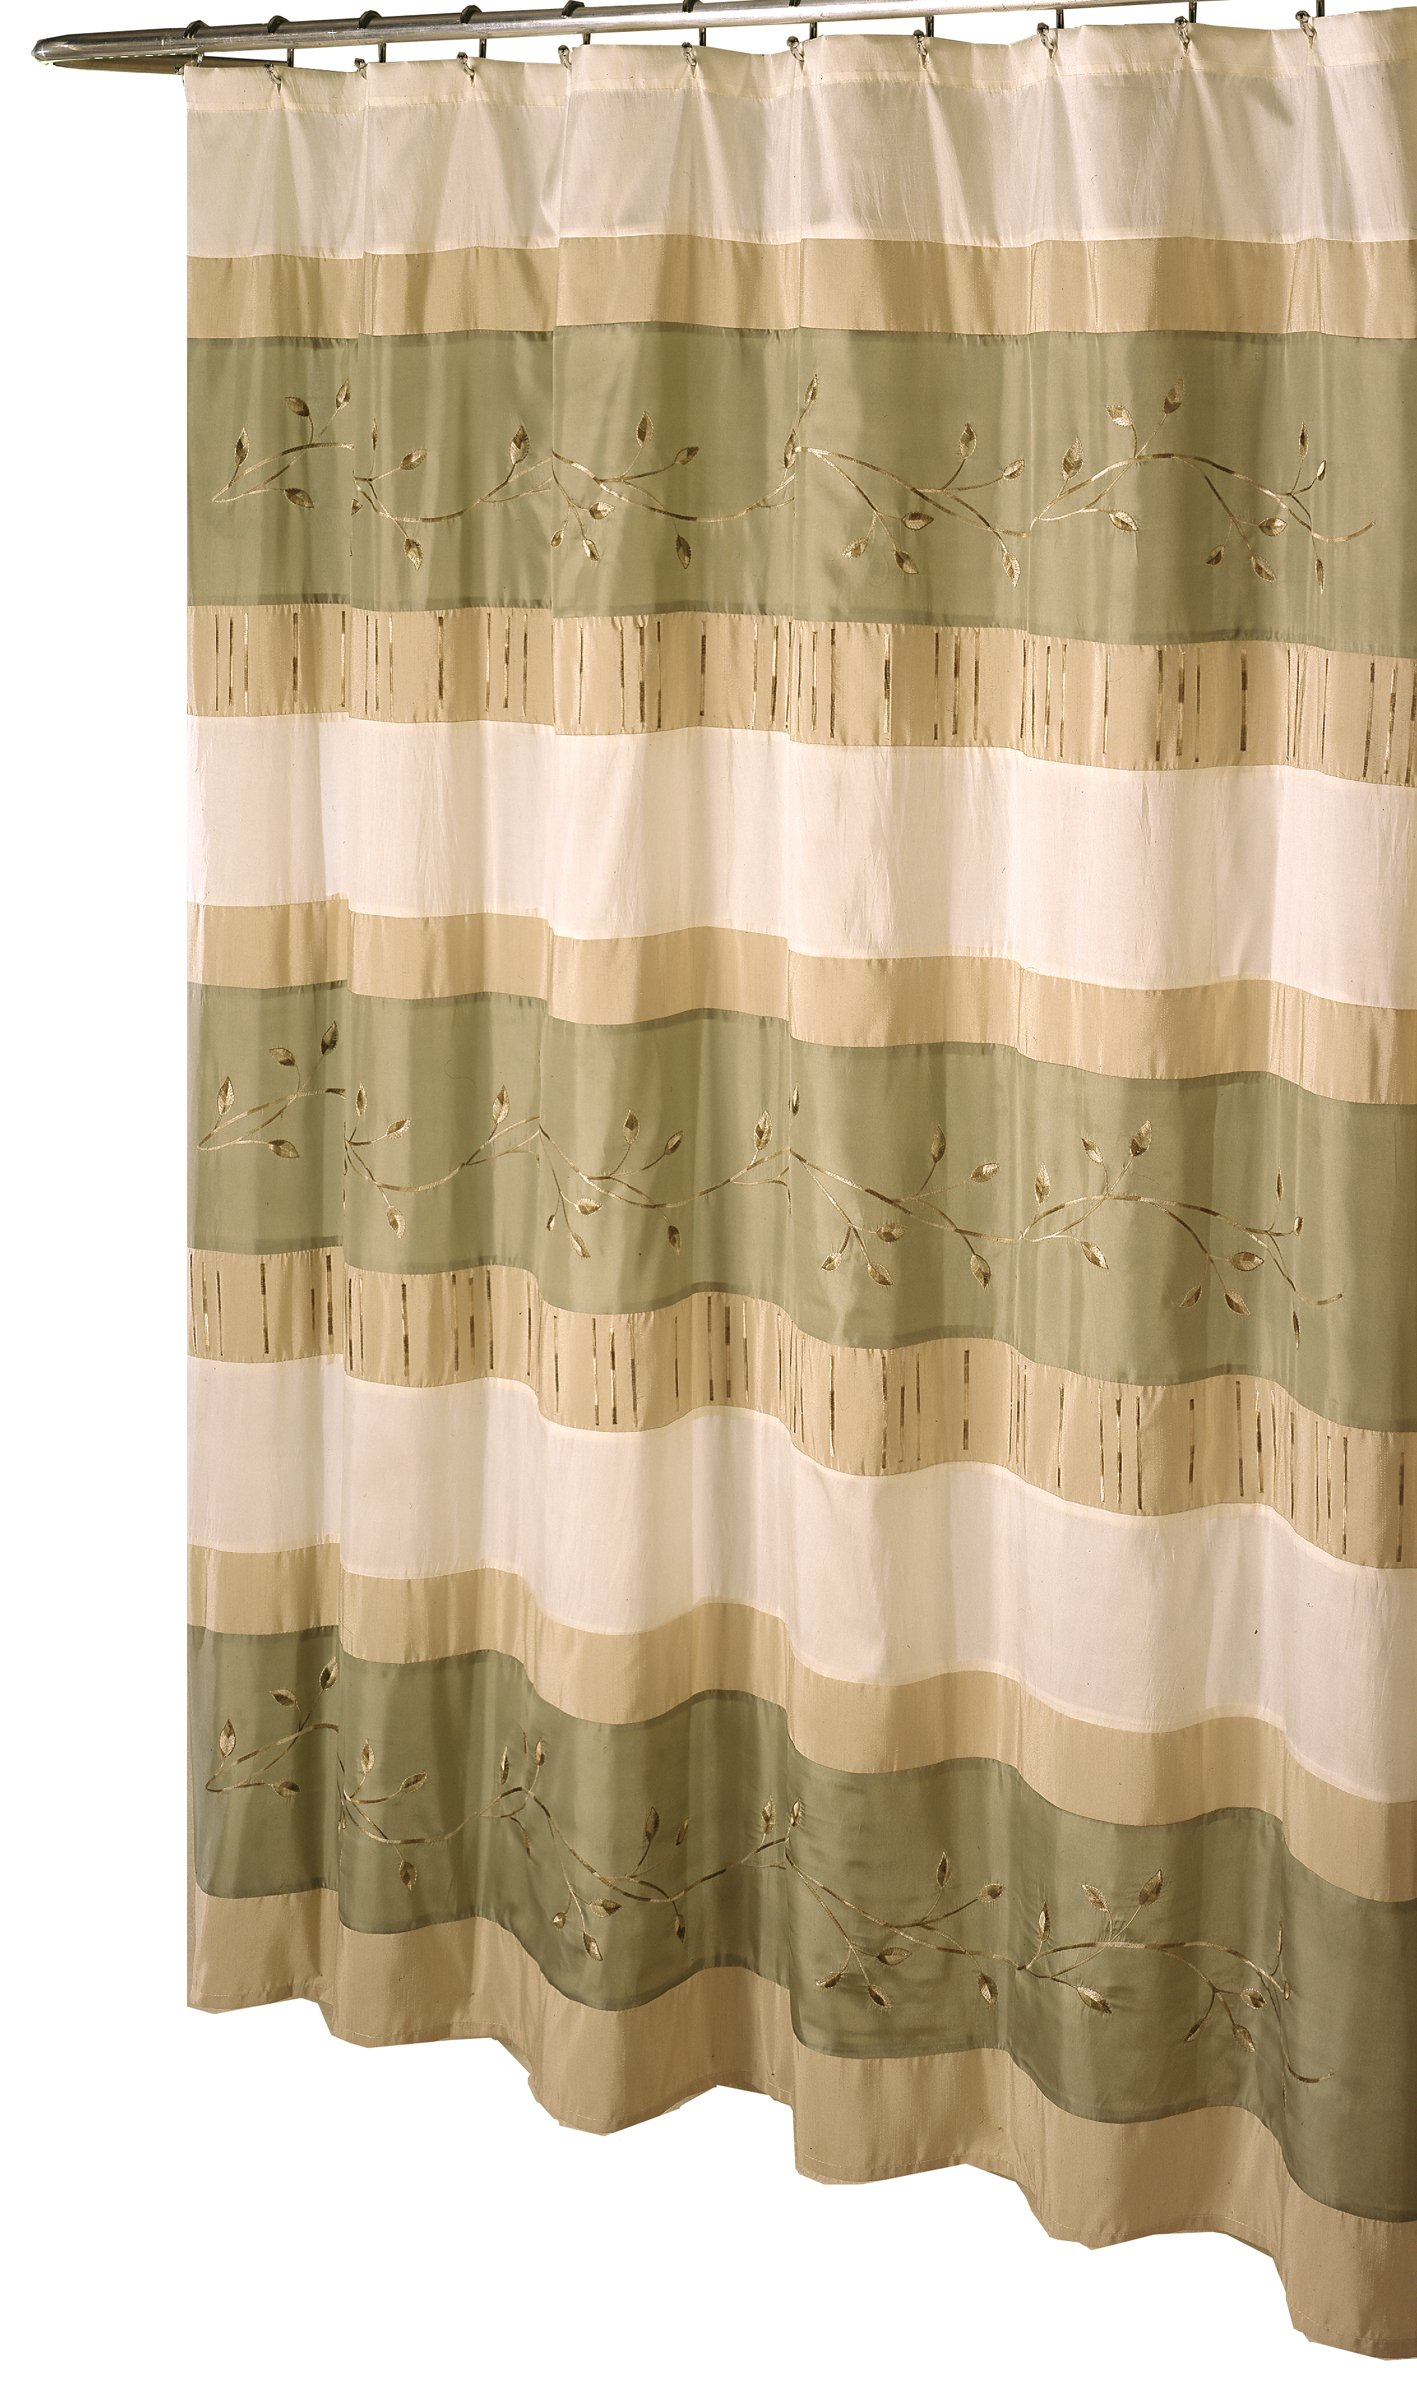 Ex-cell Home Fashions Wasabi Fabric Shower Curtain, Sage - Measures 70-inch wide by 72-inch long 100% polyester Metal grommets - shower-curtains, bathroom-linens, bathroom - 81qG9jhOOBL -